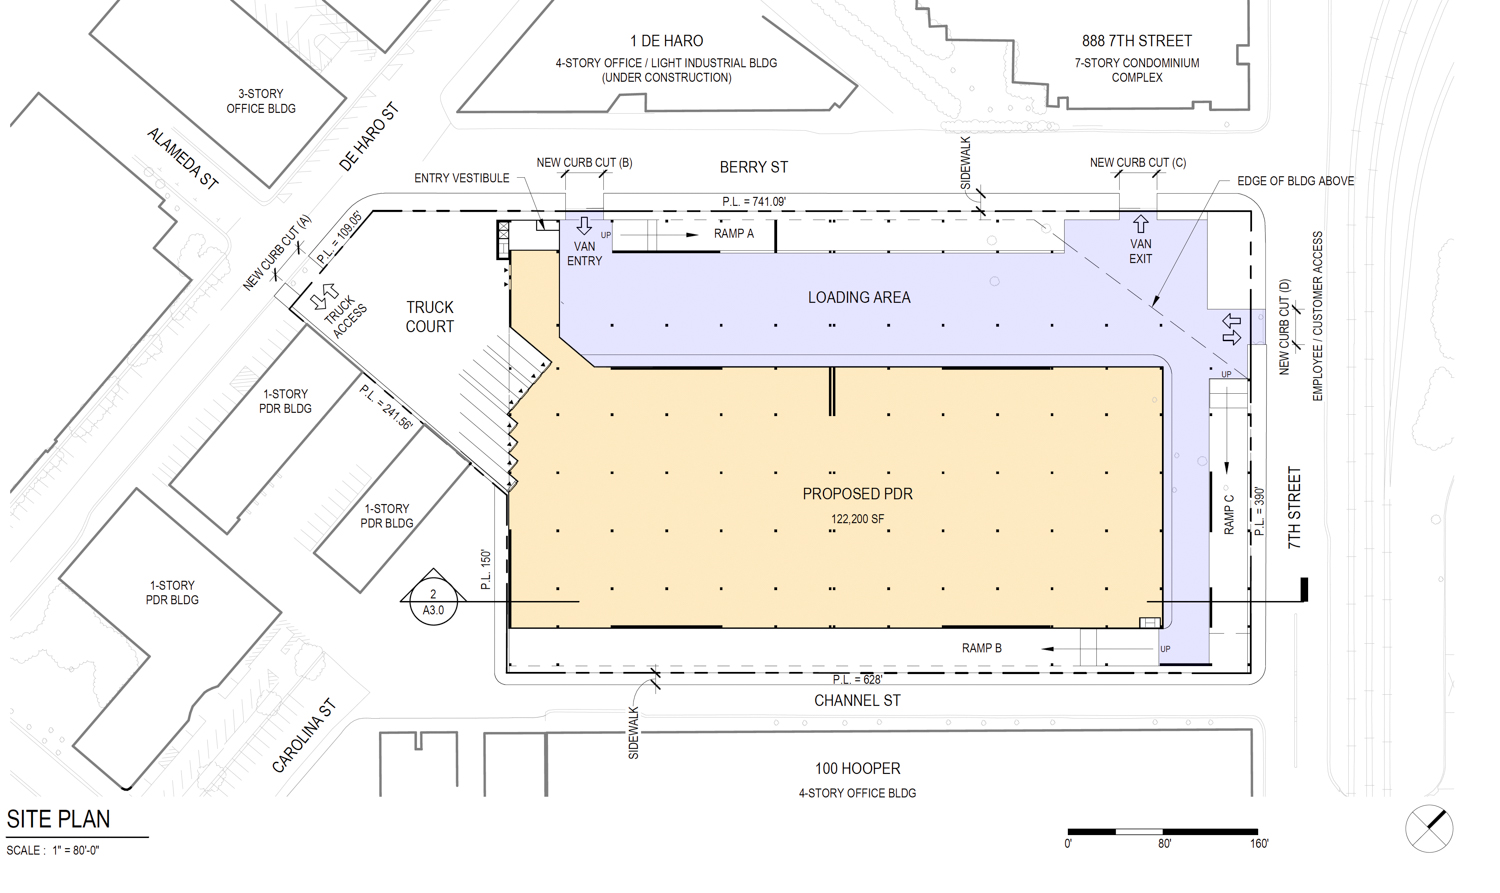 900 7th Street site plan for PDR logistics facility, drawing by MG2